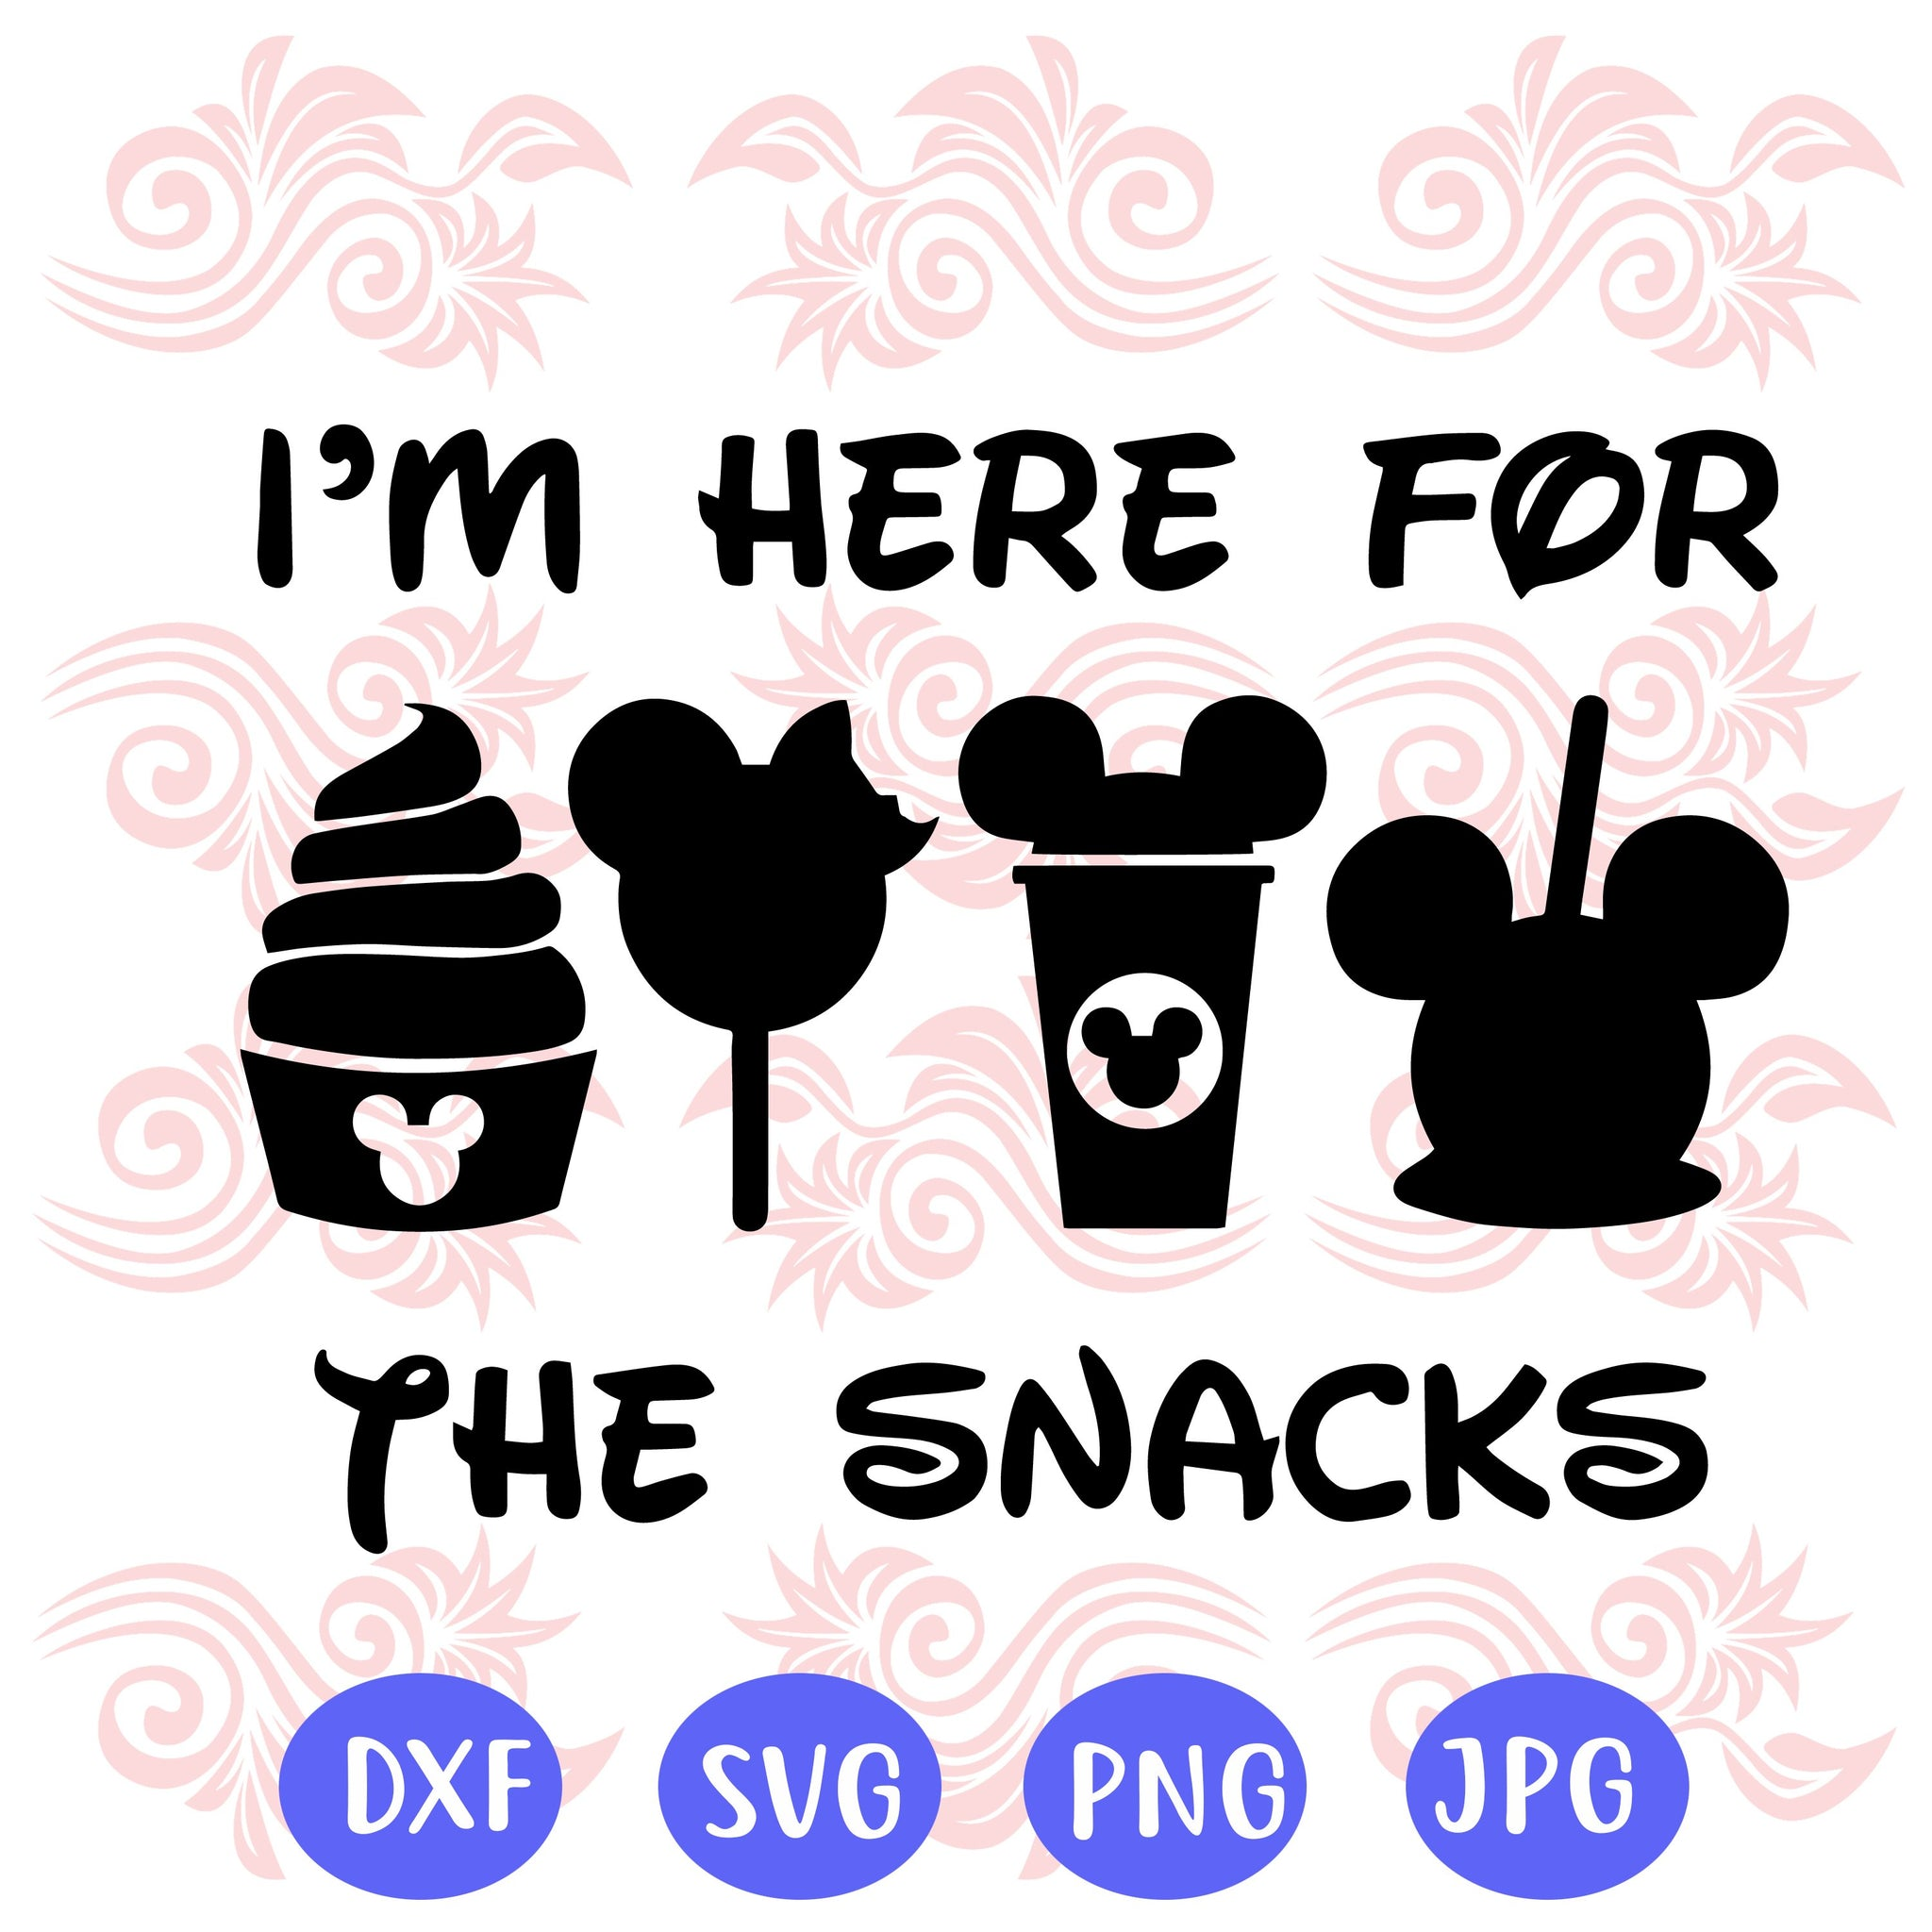 I'm here for the snacks, trip to disney, disney svg, disney vacation svg, disney snacks svg, mickey mouse svg, snack goals svg, disney trip,trending svg, Files For Silhouette, Files For Cricut, SVG, DXF, EPS, PNG, Instant Download